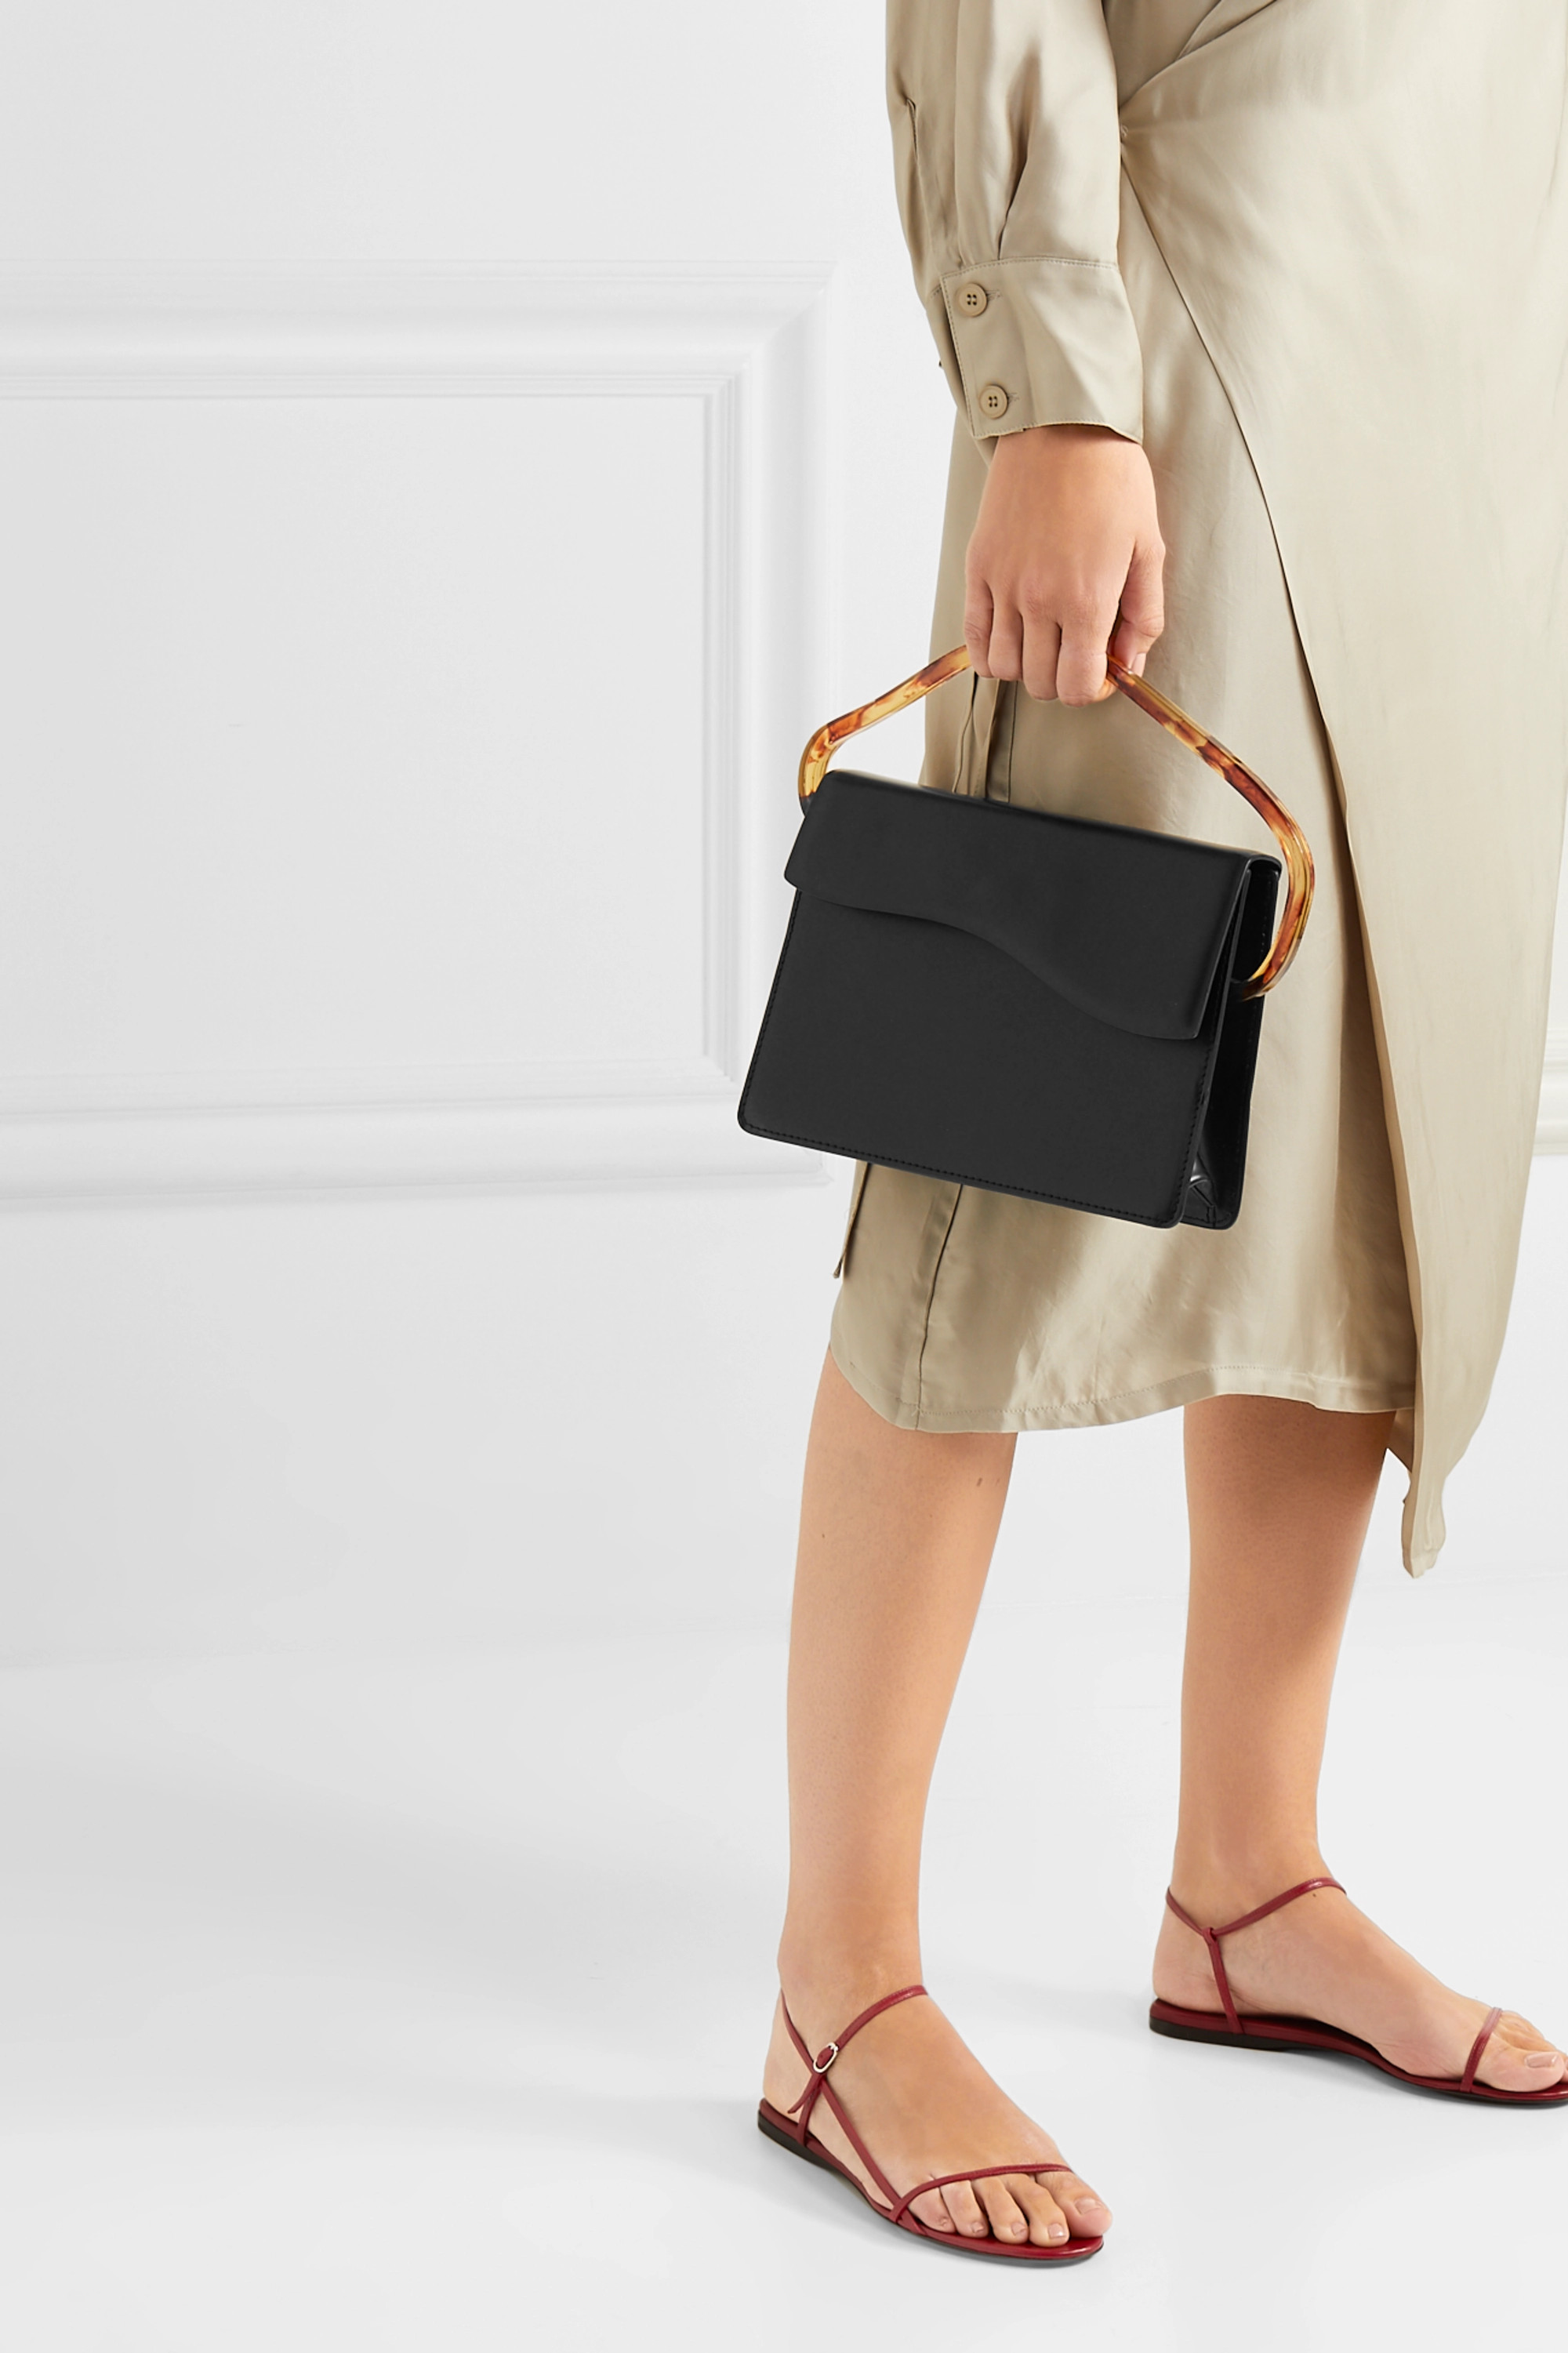 Naturae Sacra Aiges leather and resin tote